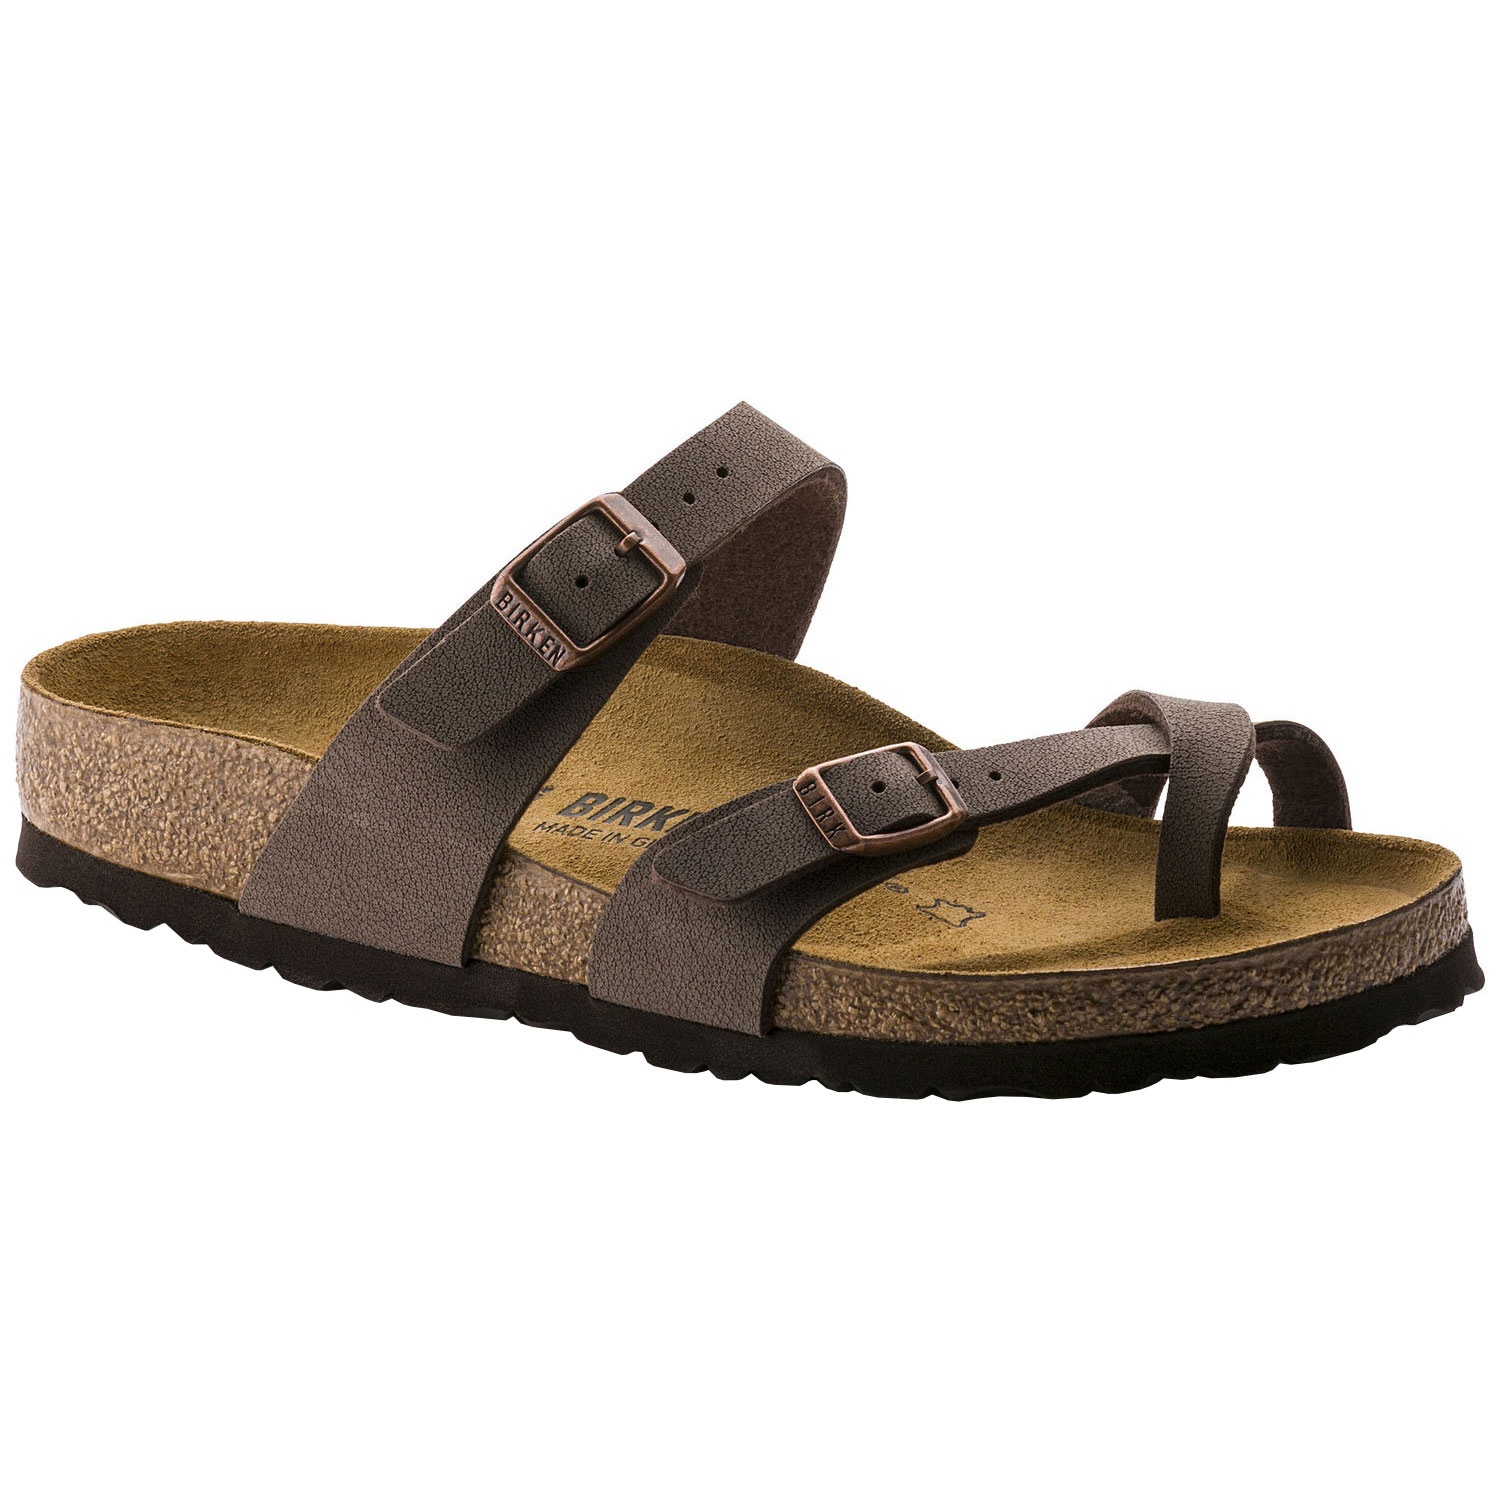 Birkenstock Mayari Flip Flop Sandals All Sizes and Colours Mocca 071061 36